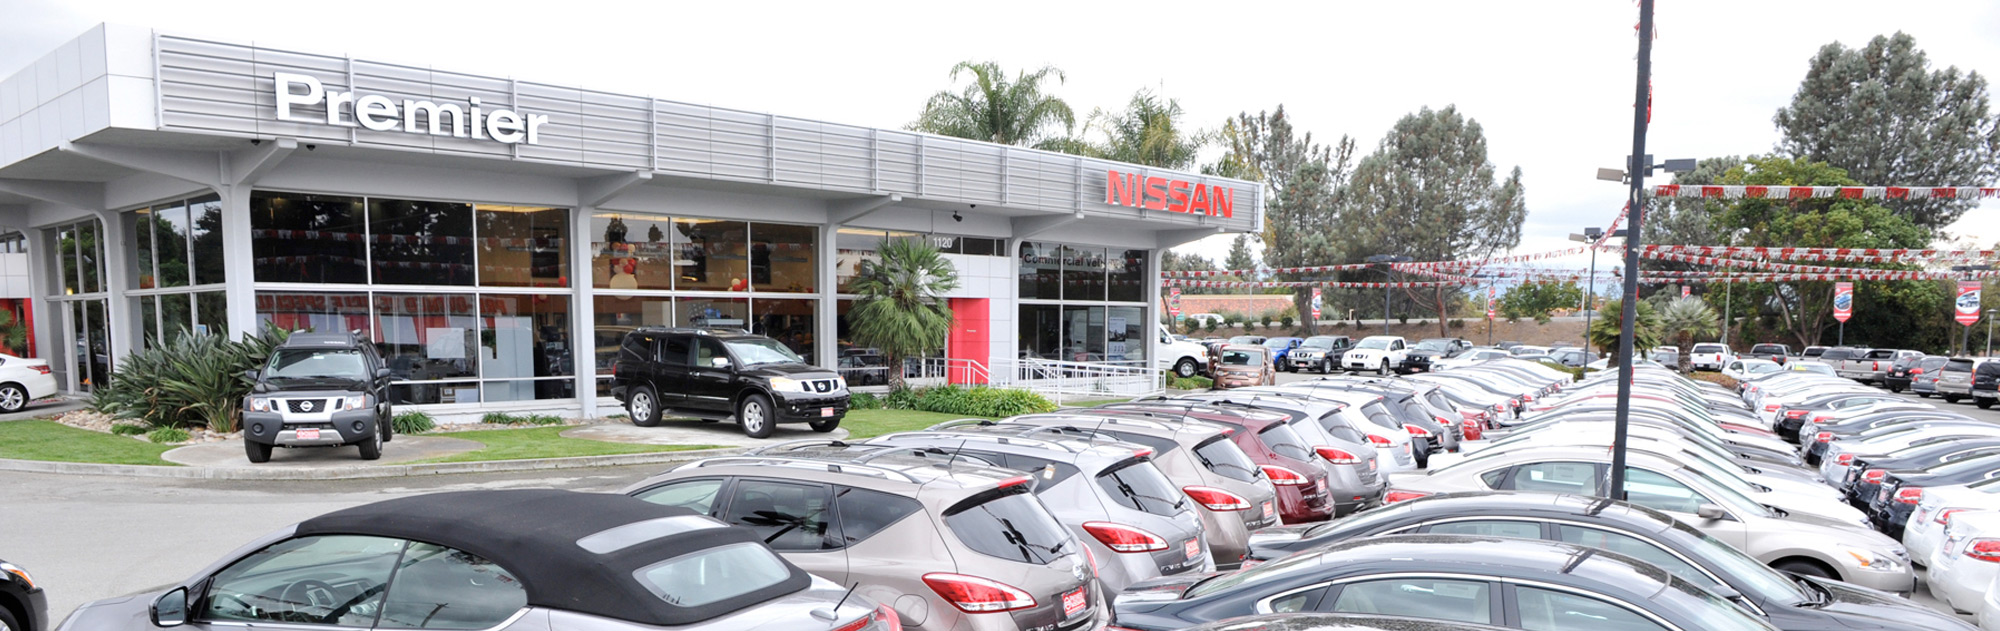 Good Premier Nissan Of San Jose   Serving Morgan Hill, Gilroy, Santa Cruz, Santa  Clara, Sunnyvale, CA